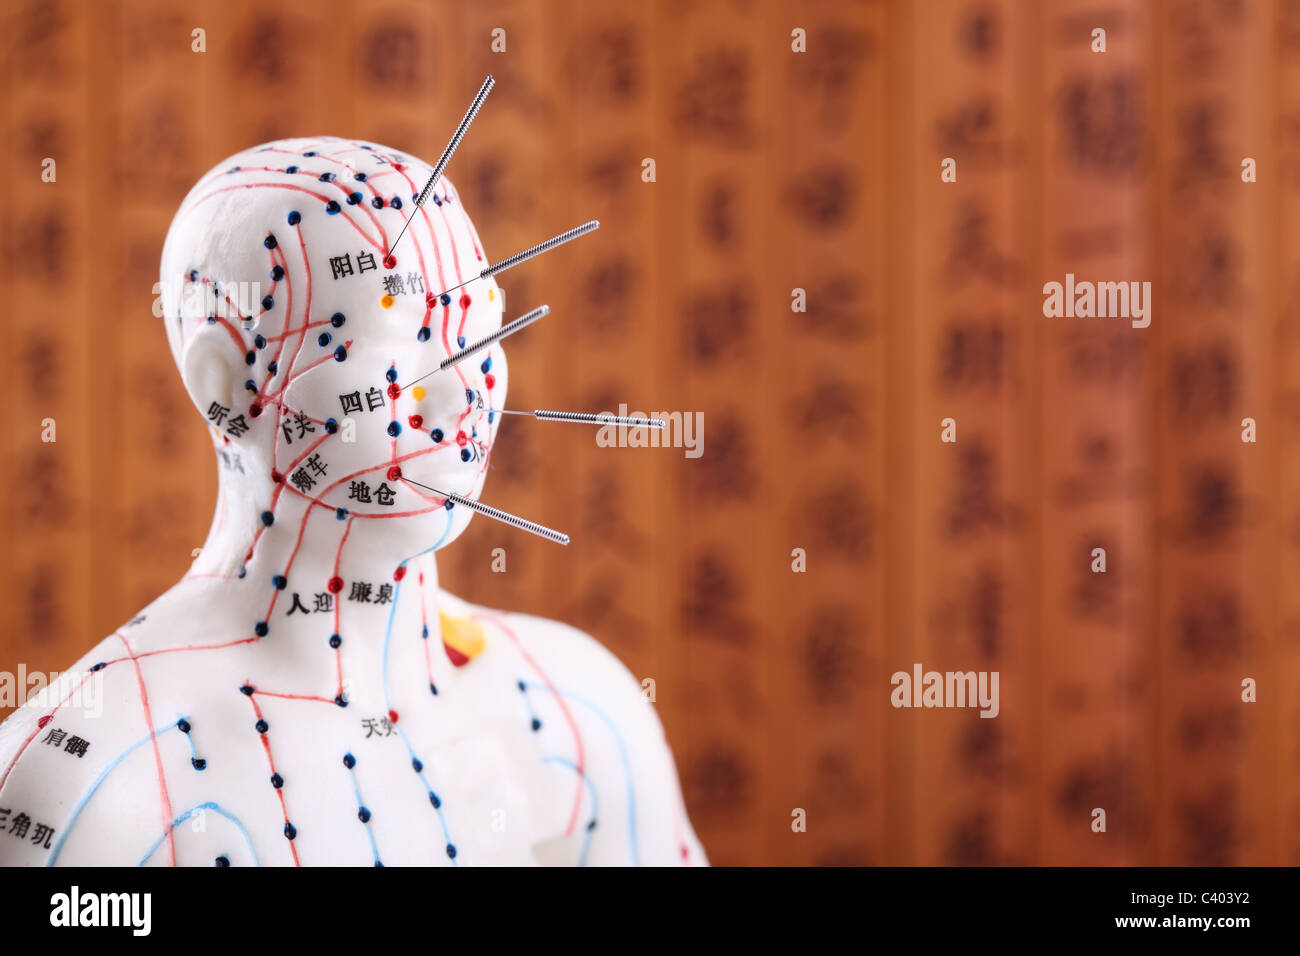 Eastern or Asian acupuncture Medical Treatment. - Stock Image